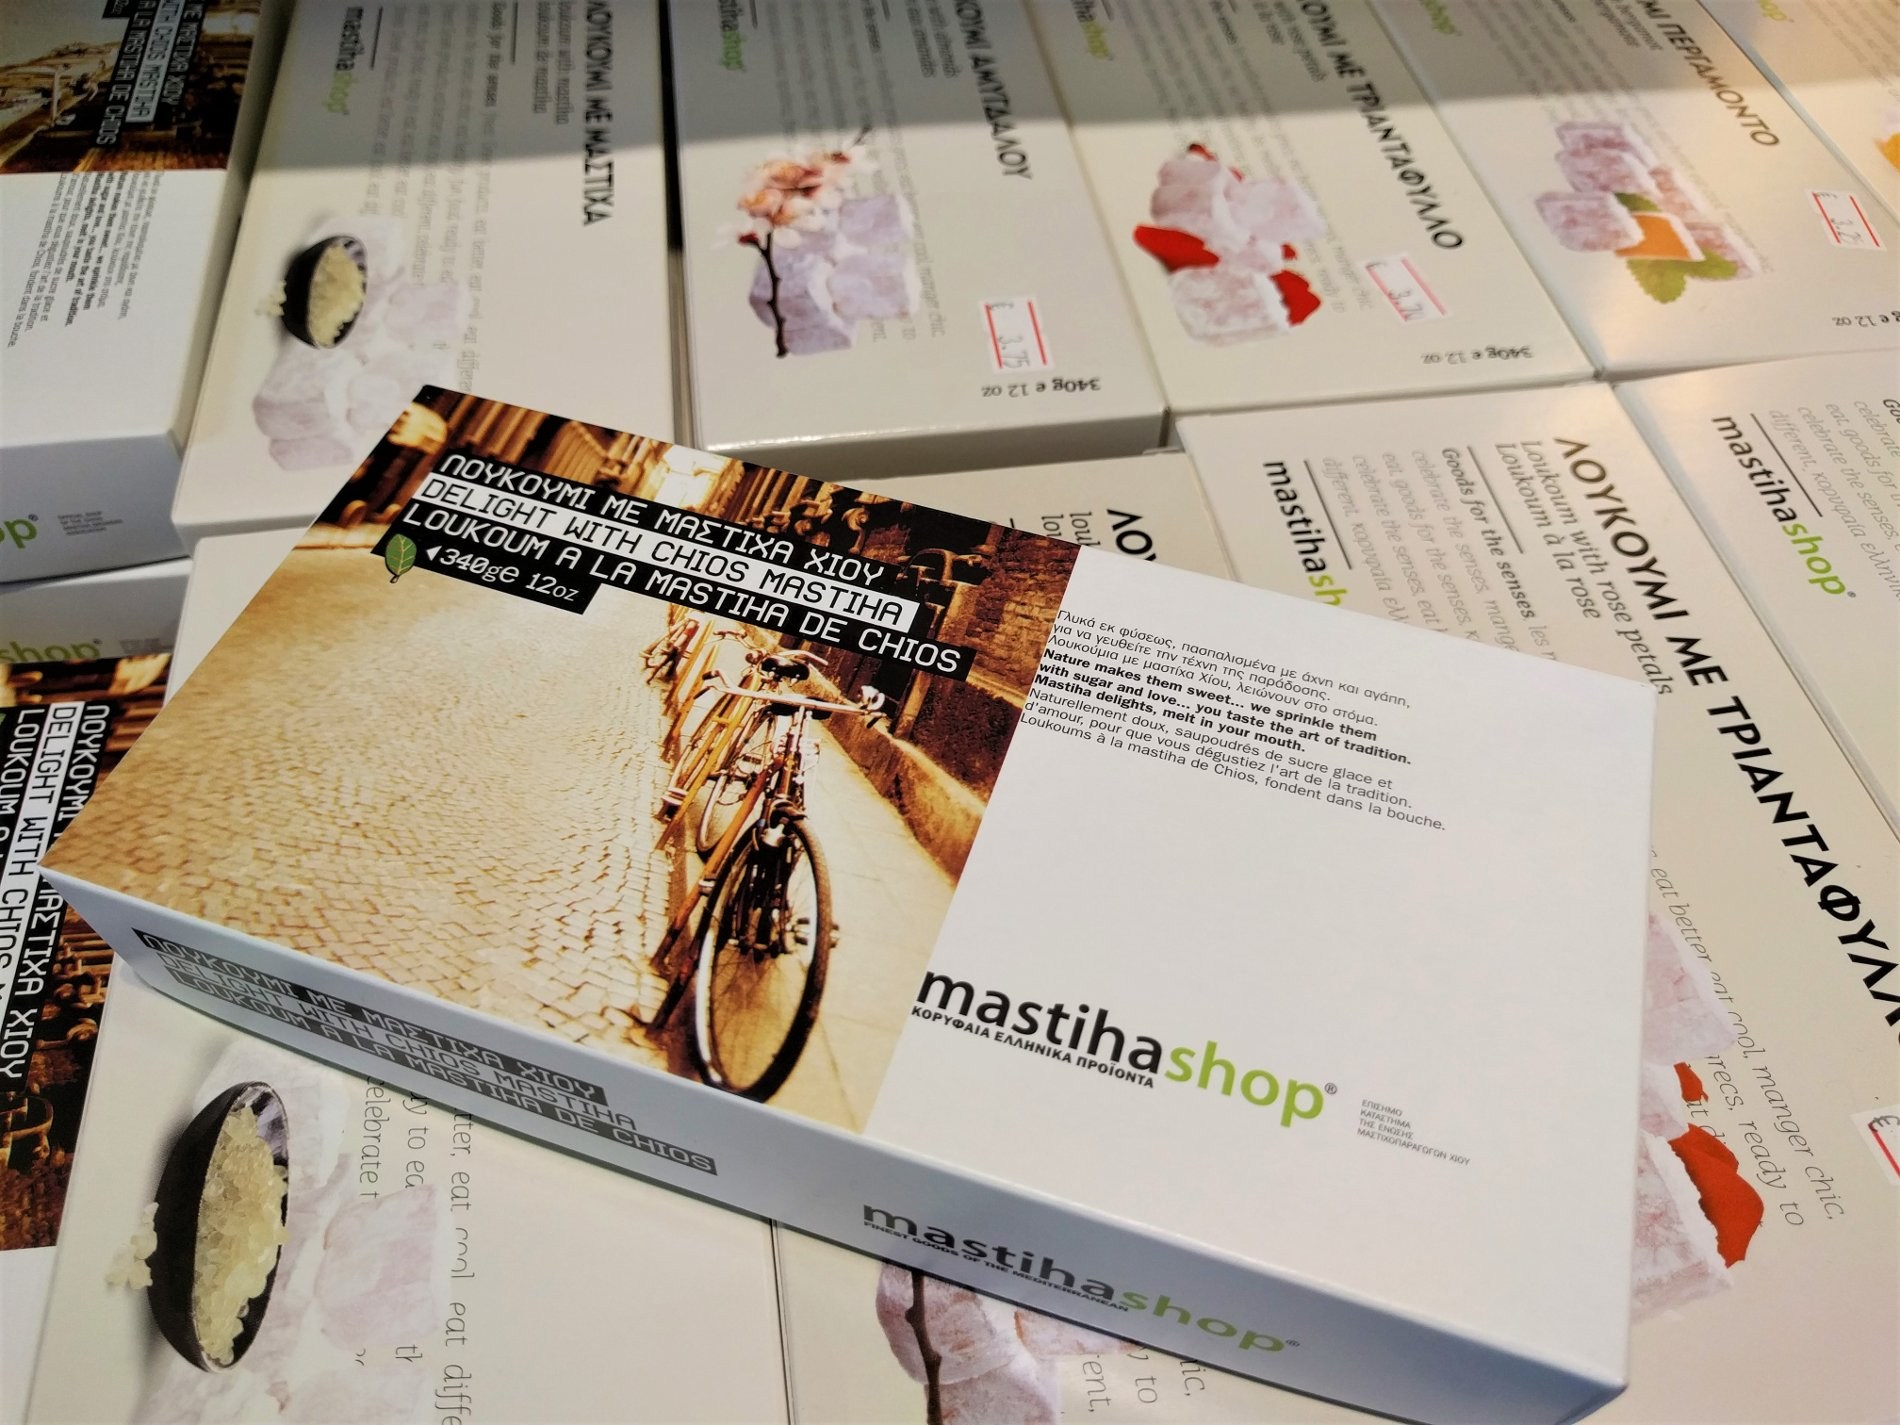 Try  loukoumi  with mastic flavor at  Mastiha shop  in Athens. Photo source: Truevoyagers